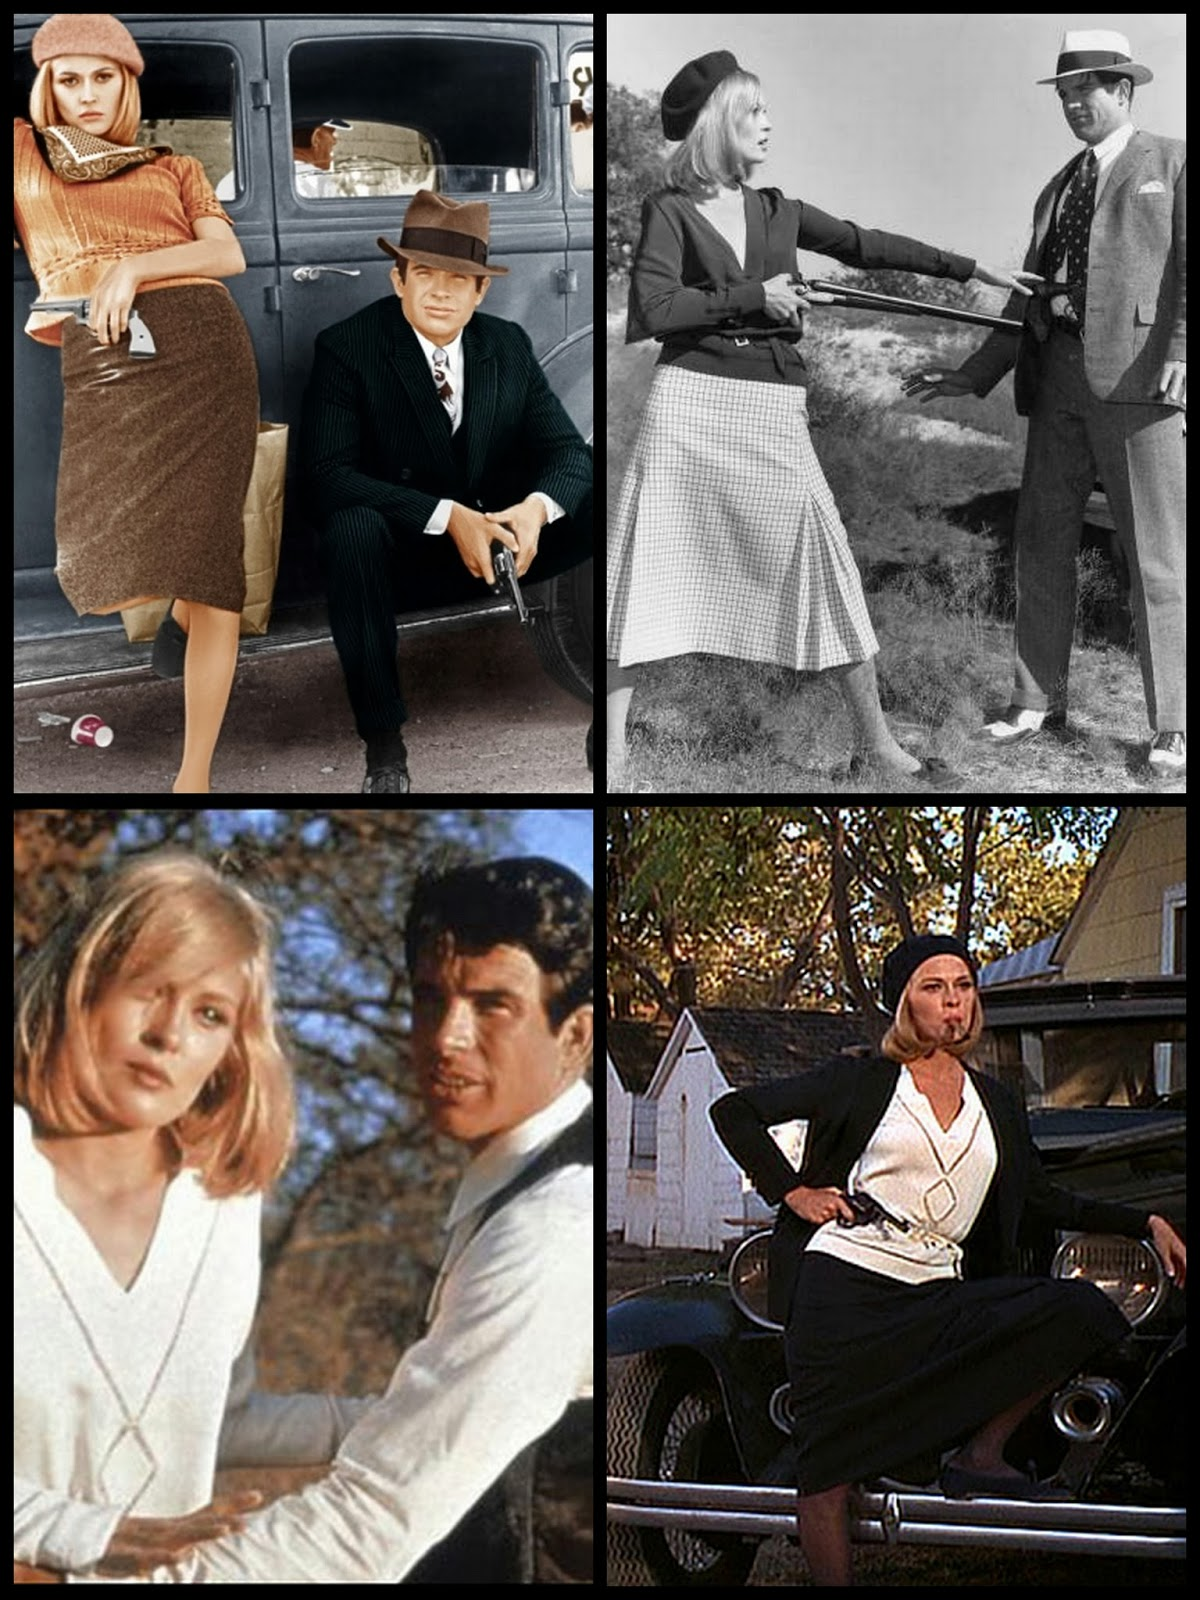 bonnie clyde film analysis Get all the details on bonnie and clyde: analysis description, analysis the title bonnie and clyde refers, of course, to the film's two main characters.